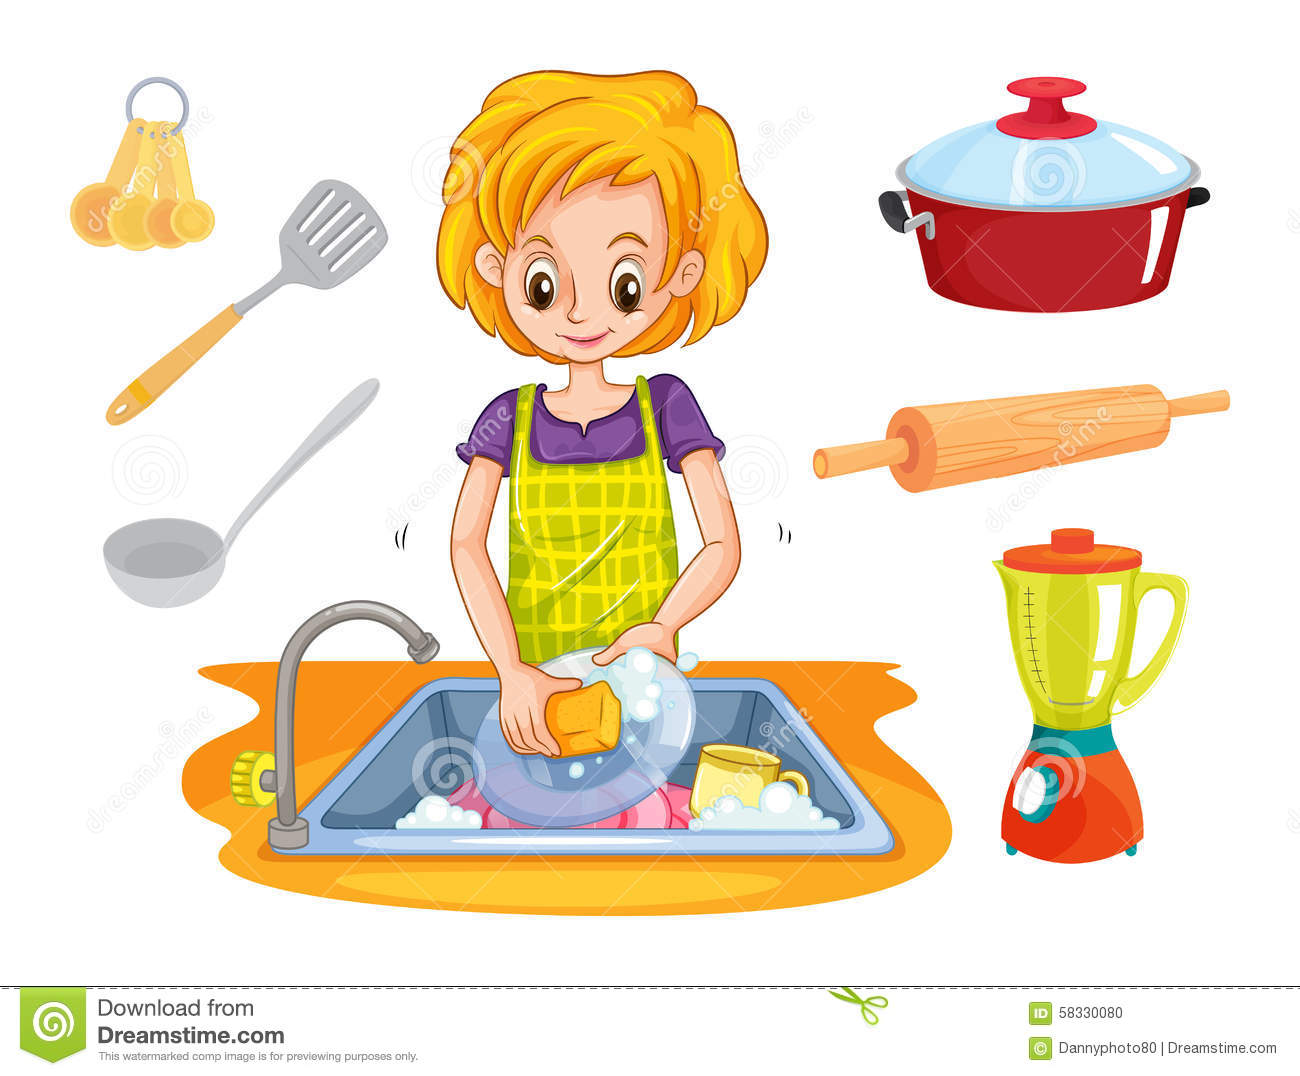 clipart free Of for washing utensils. Wash clipart uses water